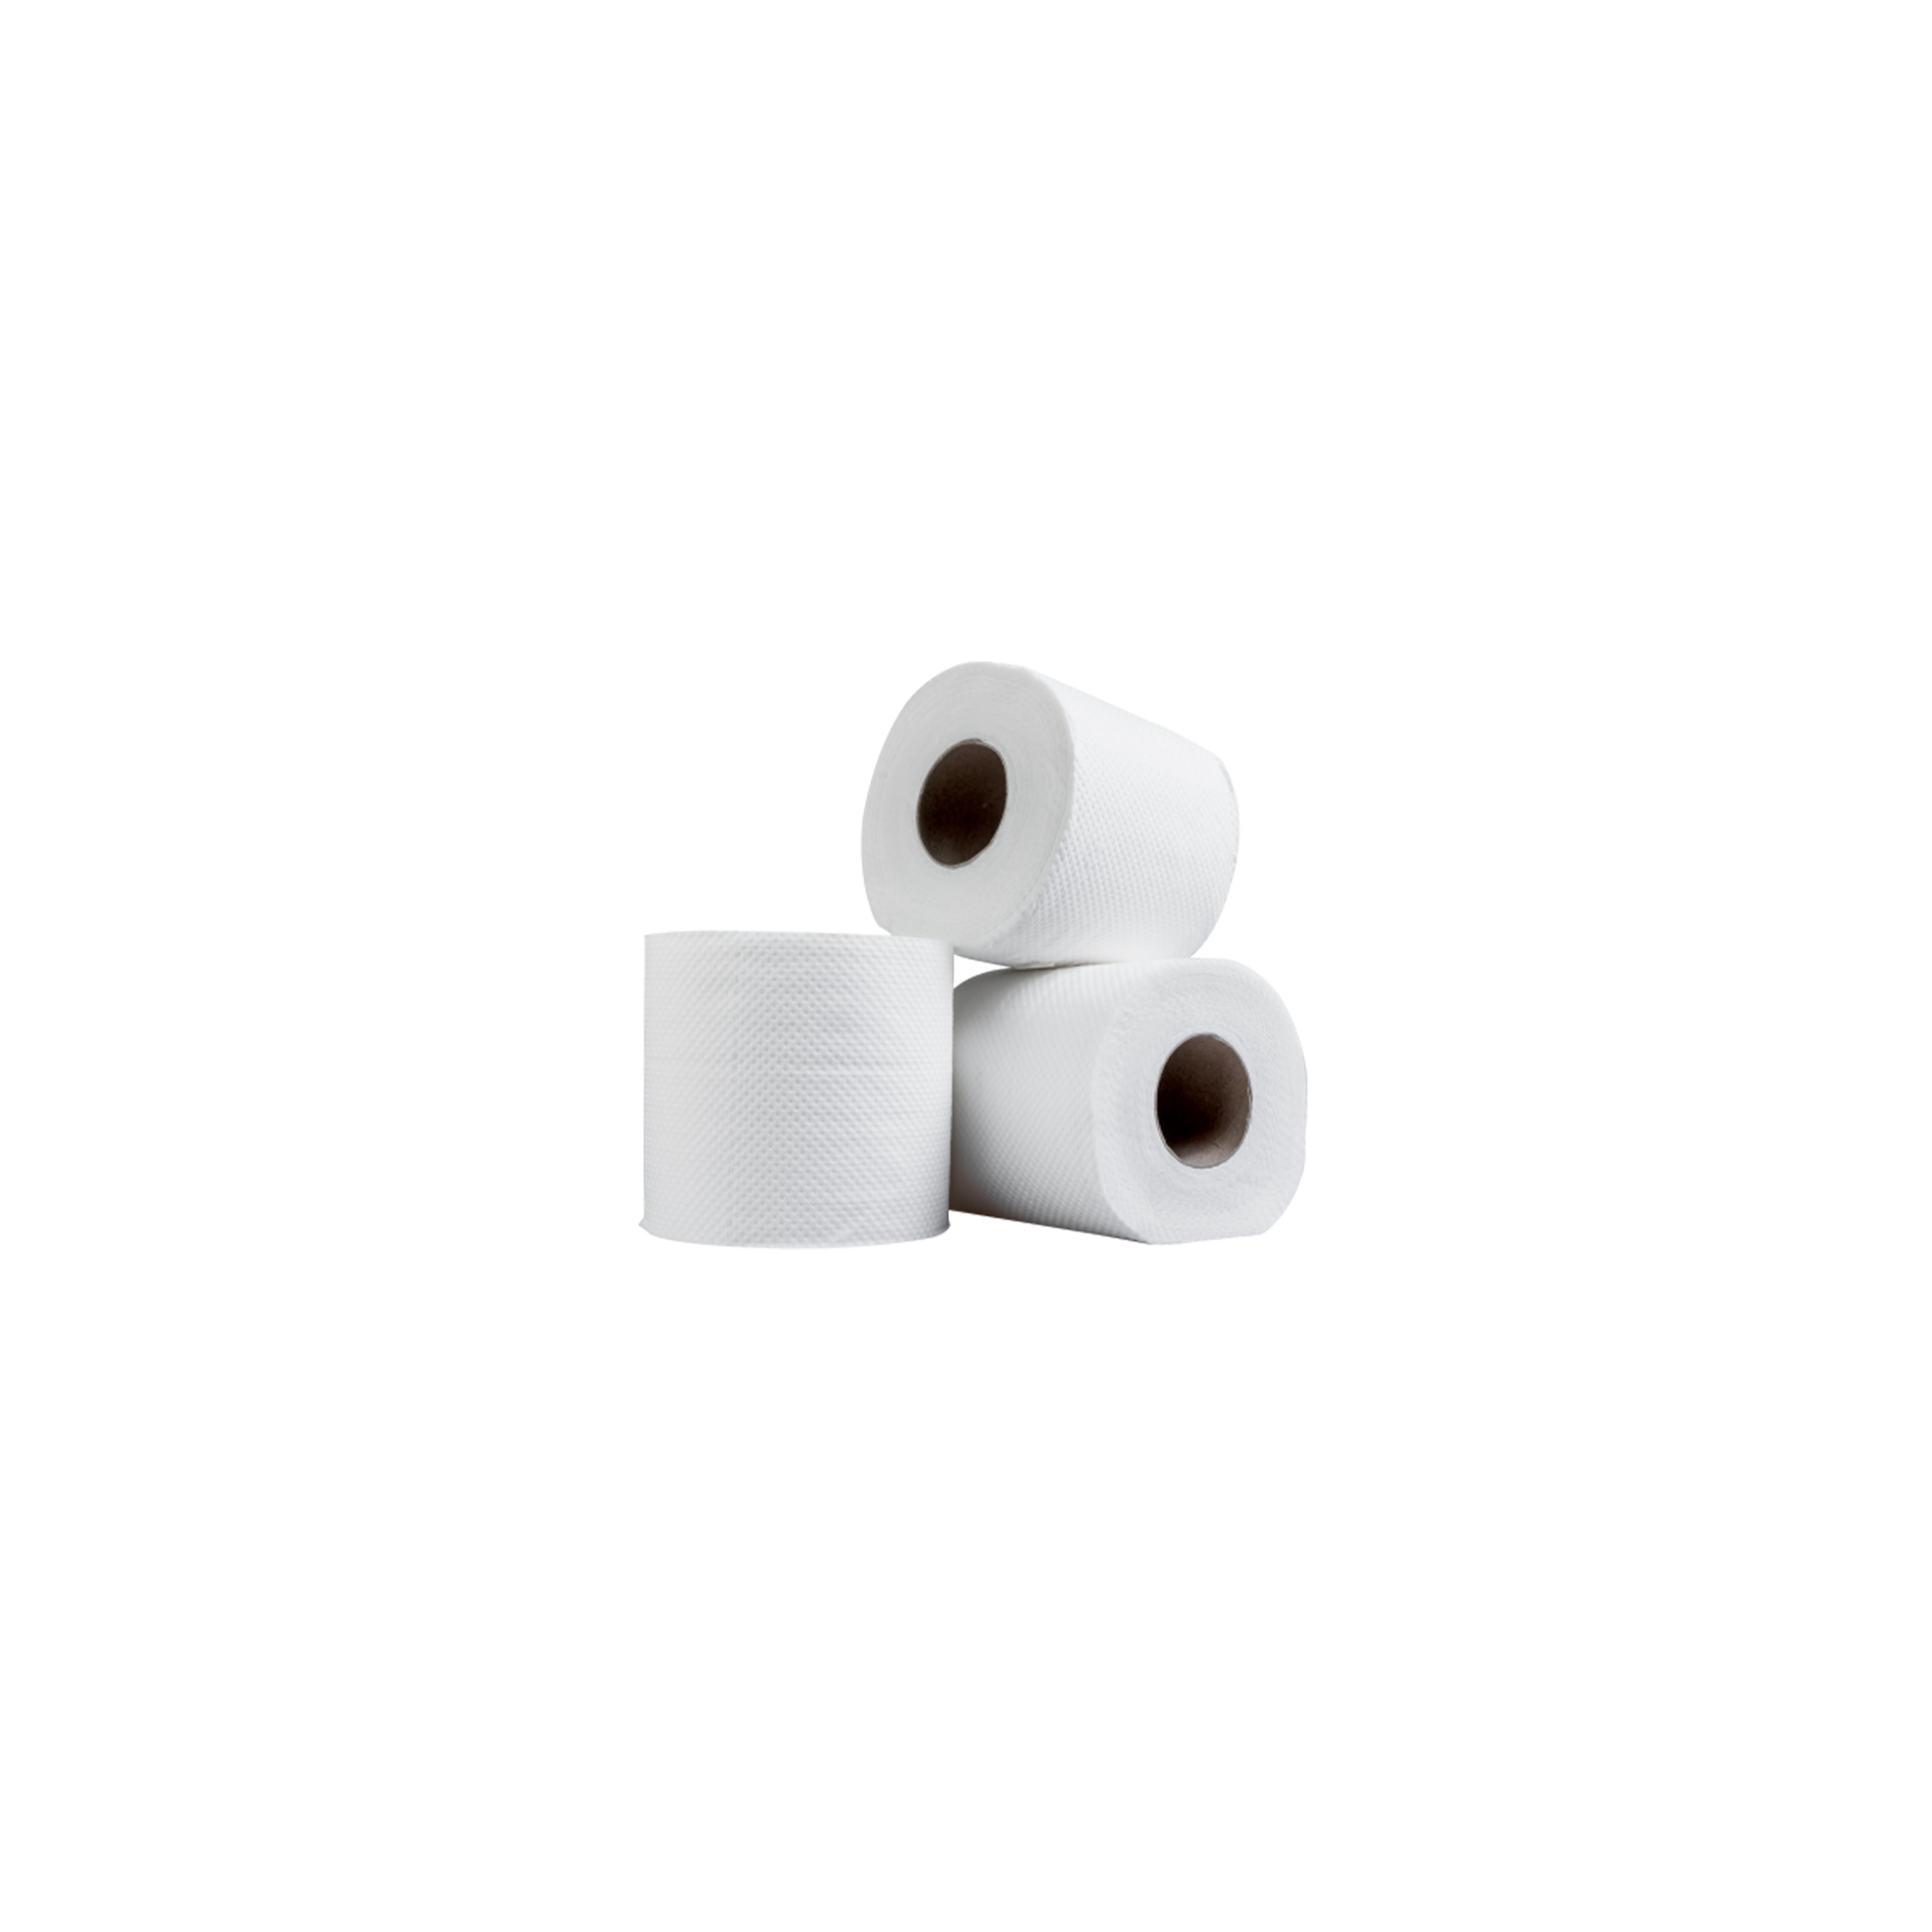 Toilet Bowl Tissue 123